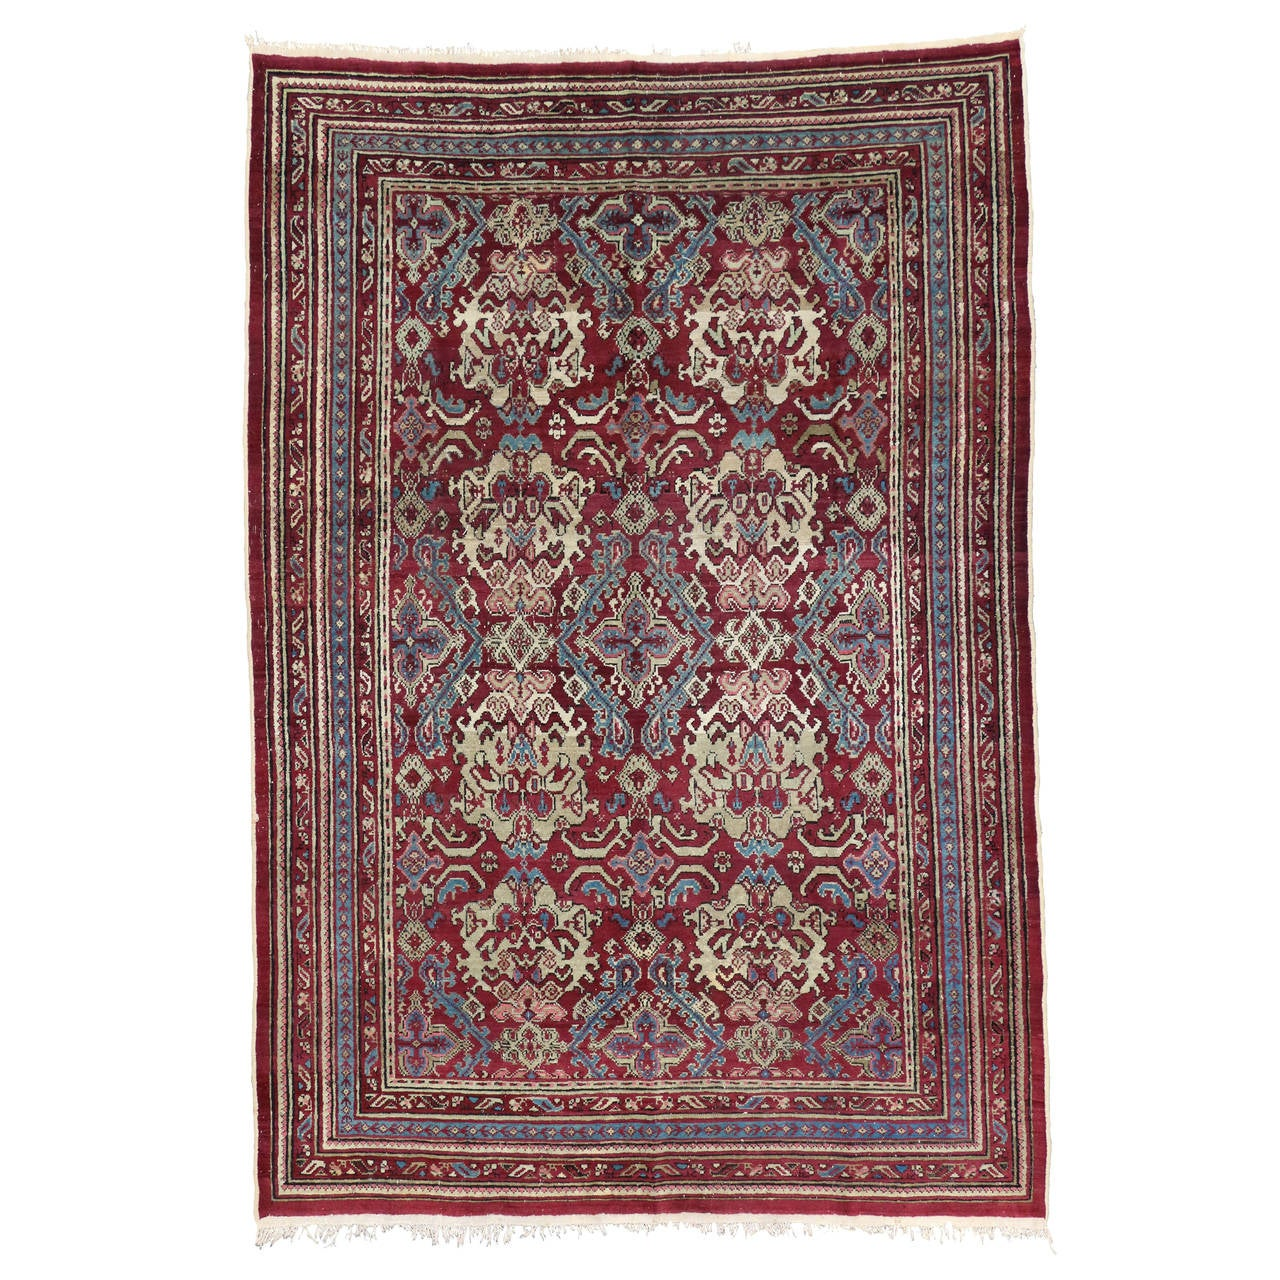 Deep Burgundy Indian Agra Rug For Sale At 1stdibs: 19th Century Antique Indian Agra Rug With Modern Design